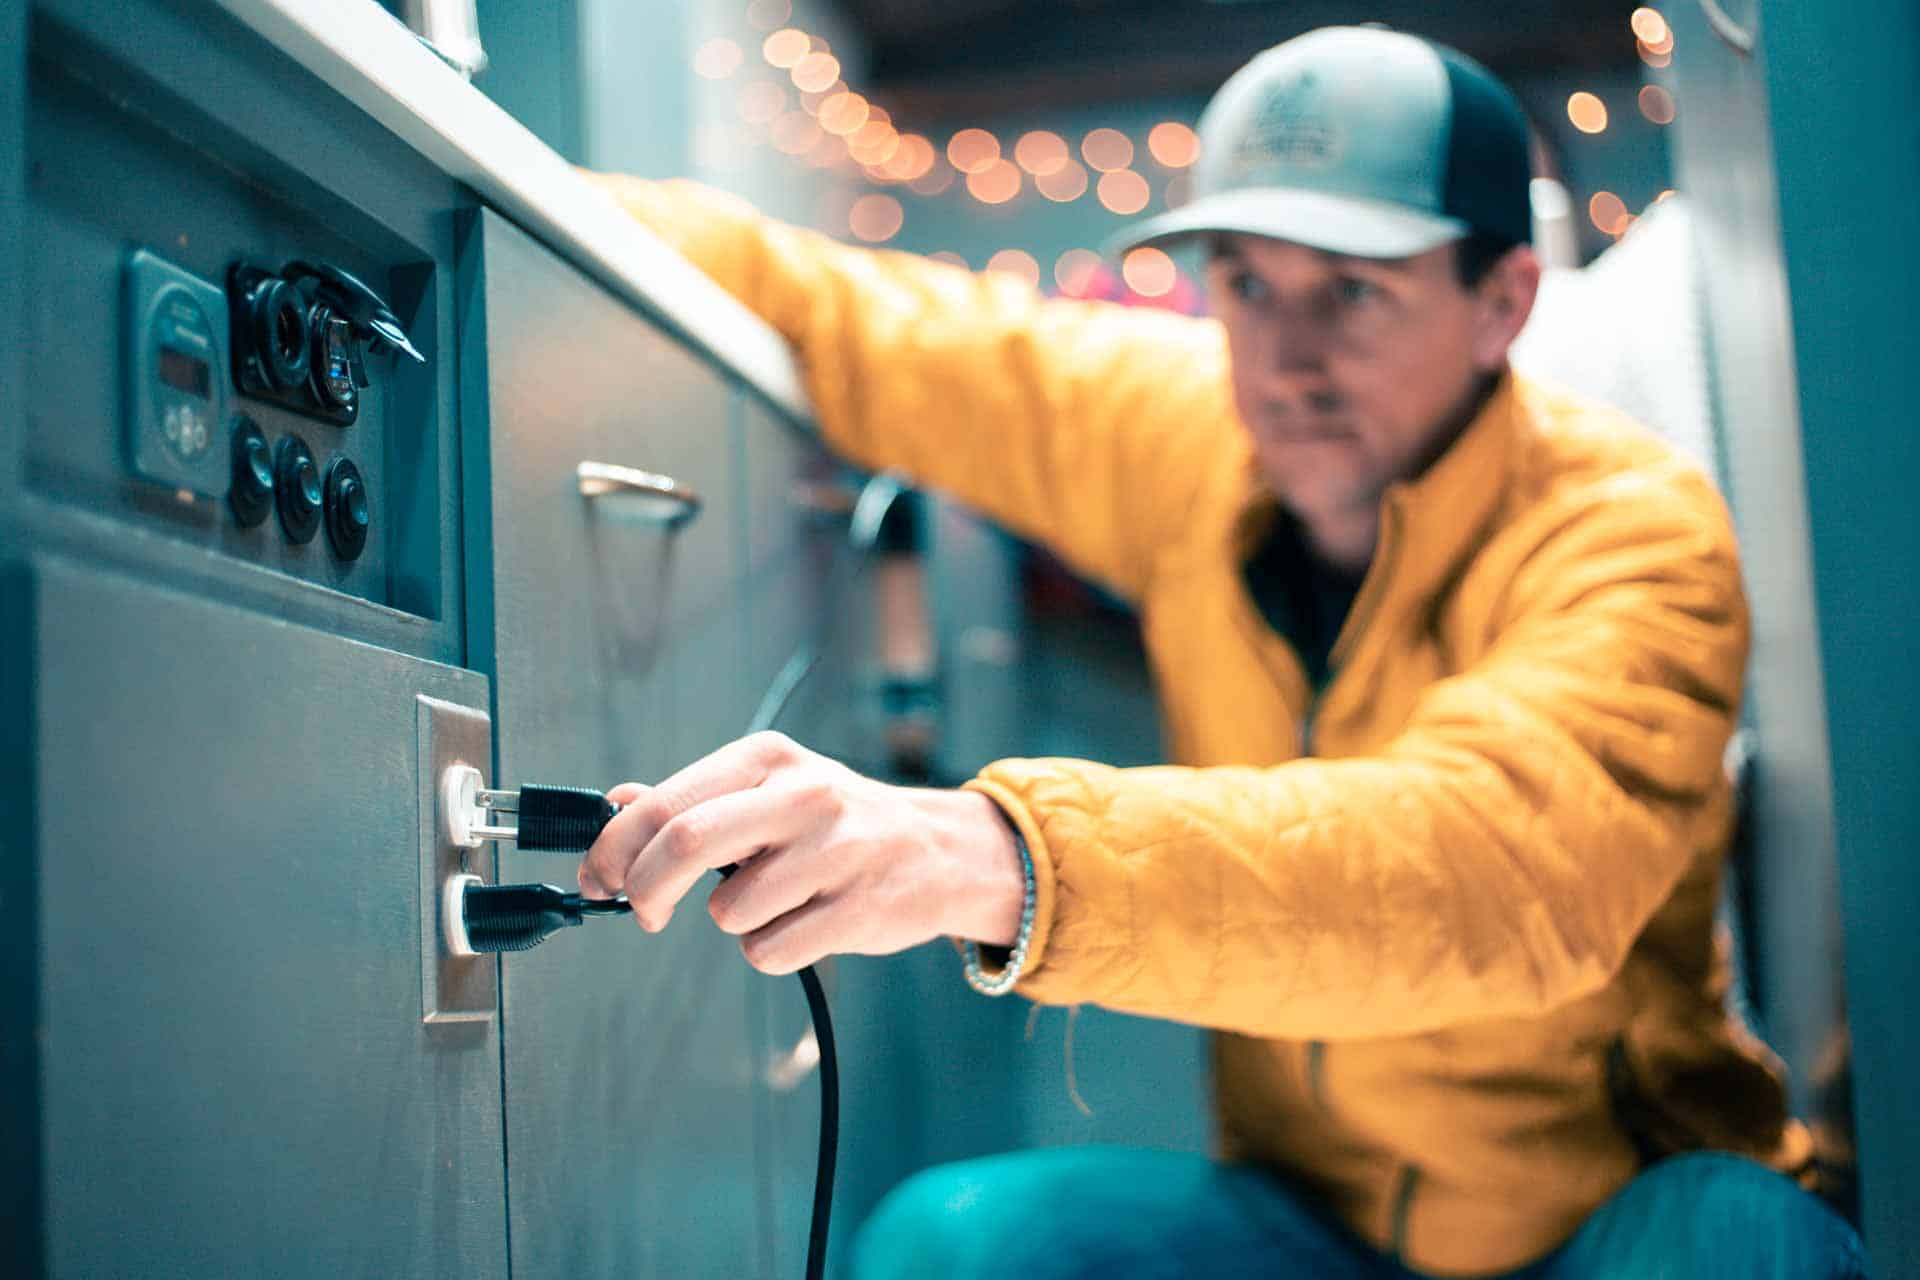 How-to Choose an Inverter for a DIY Camper Van Electrical System